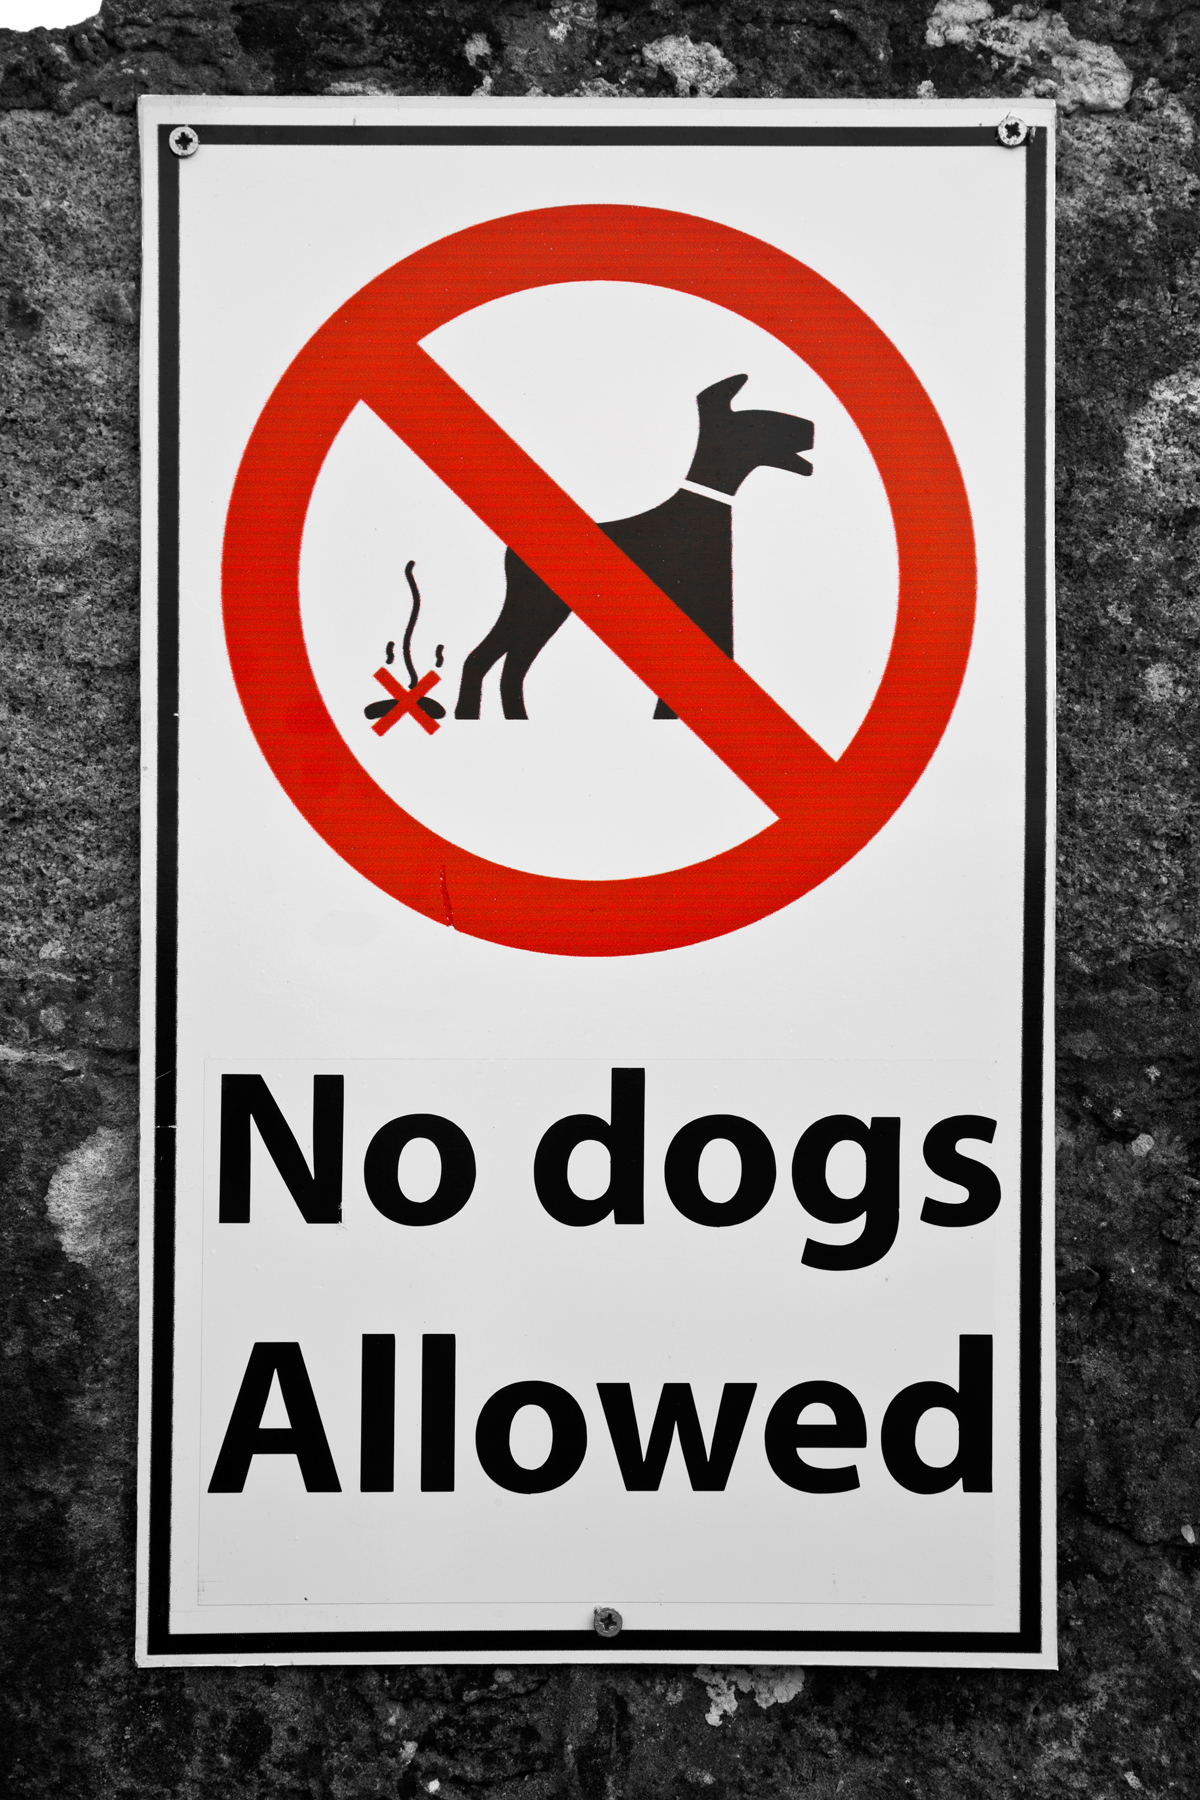 No Dogs Allowed Sign, Allowed, Poop, Object, Odor, HQ Photo